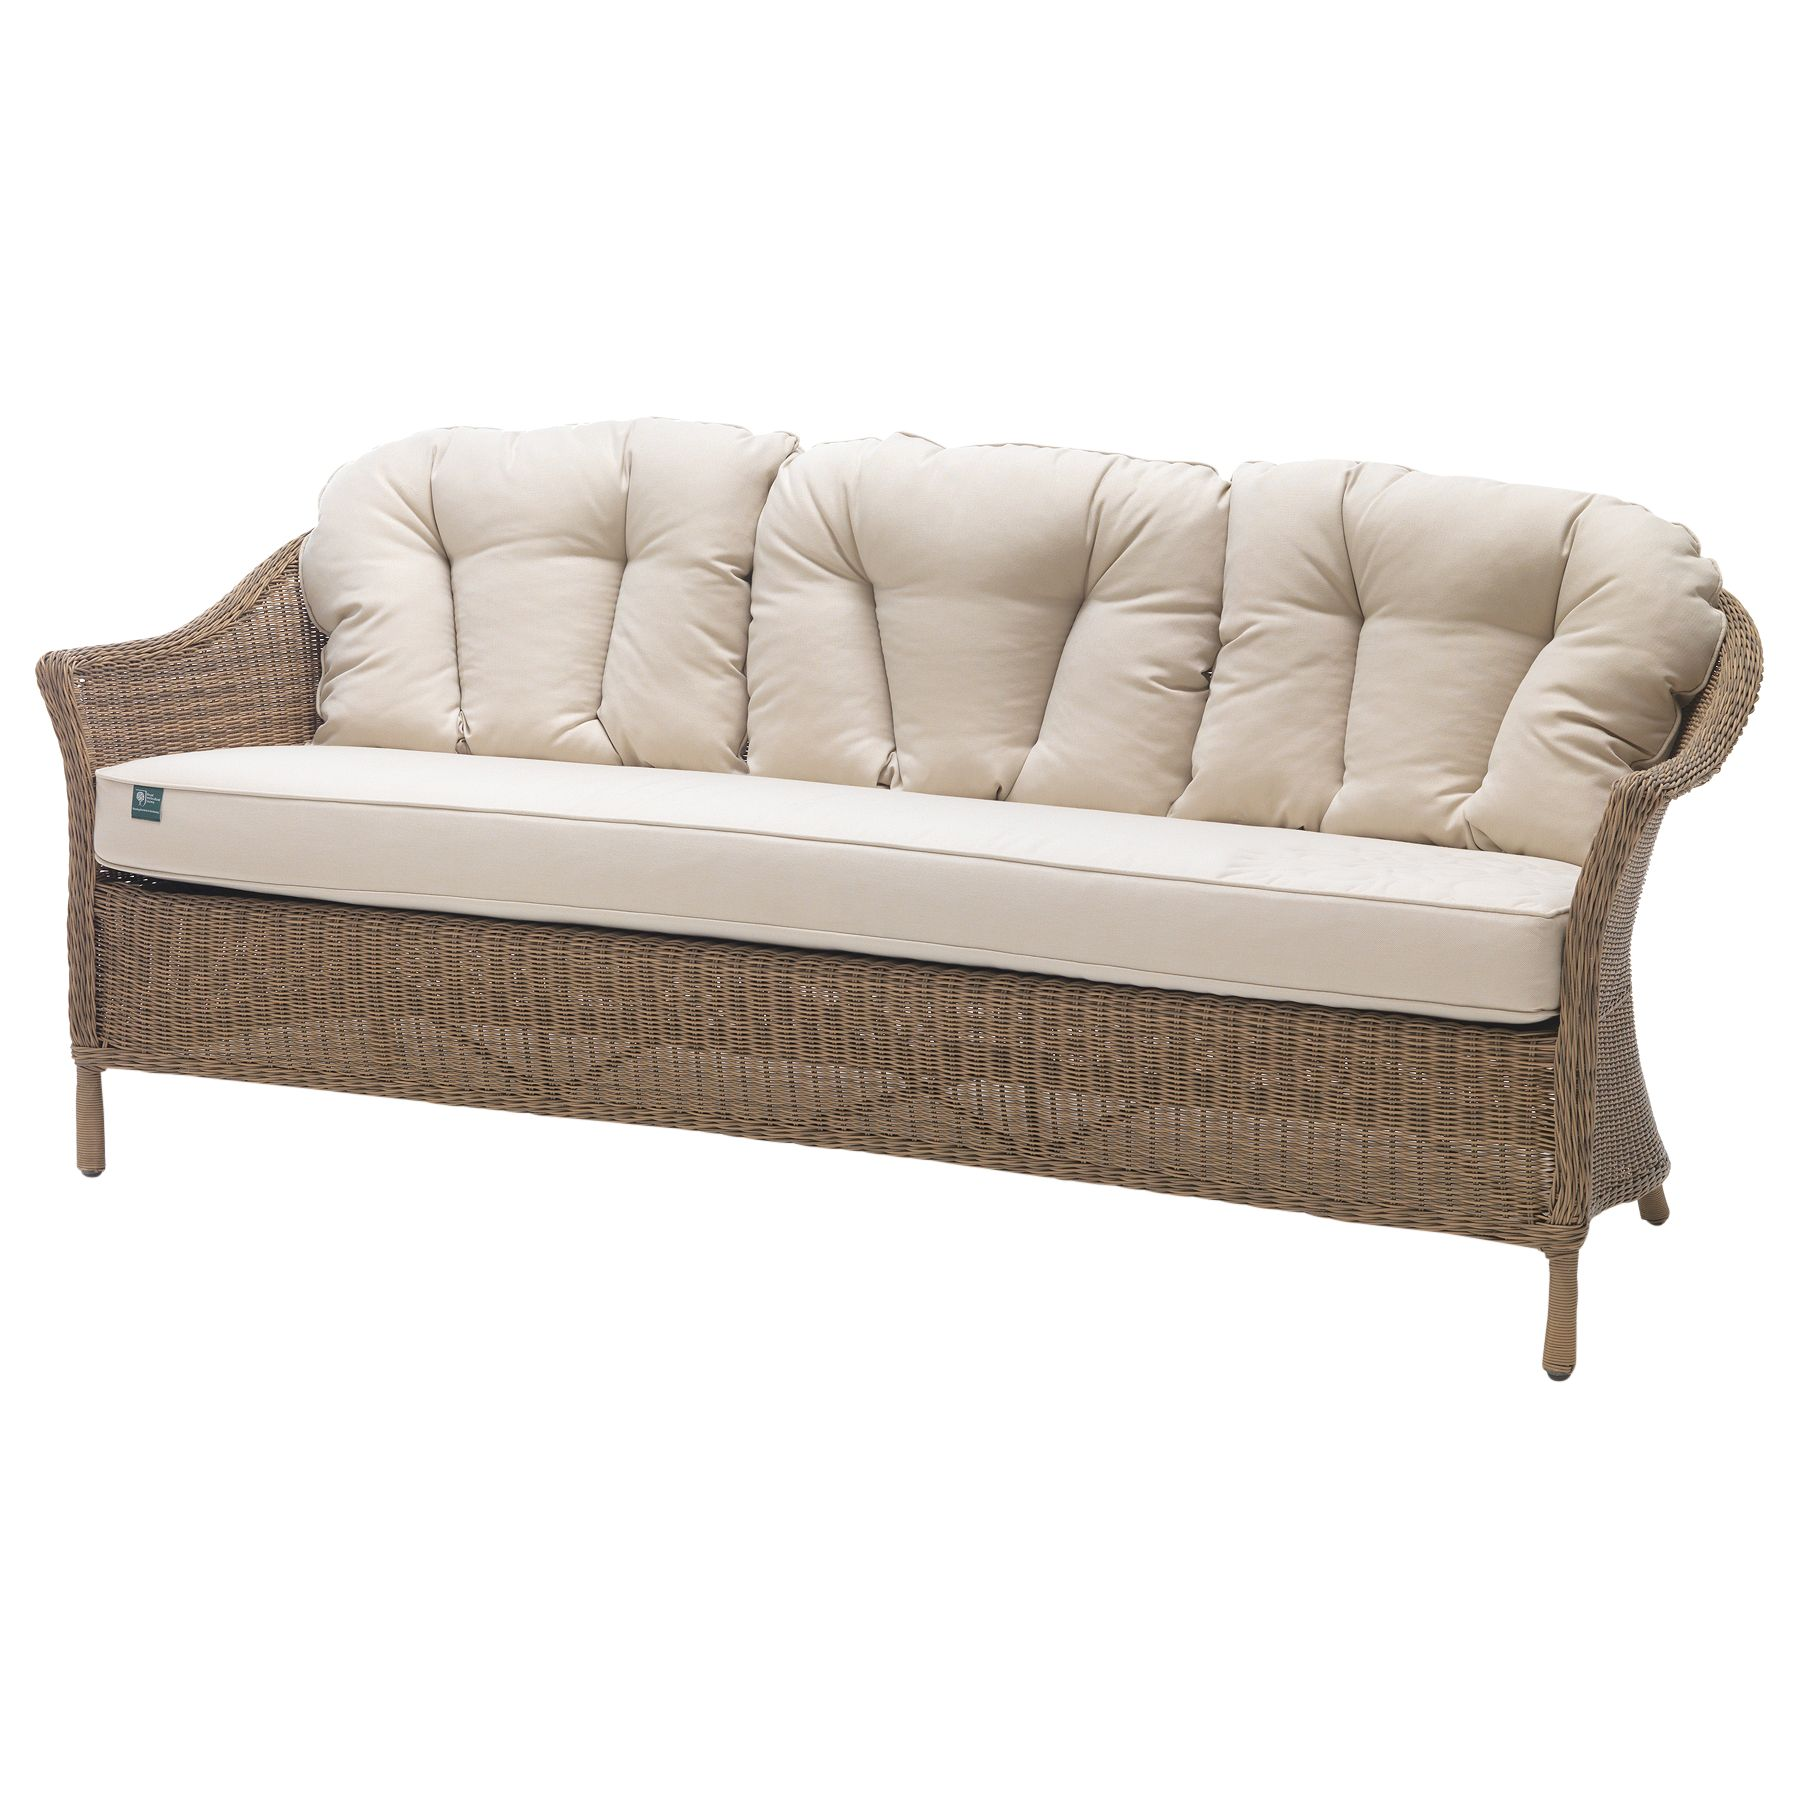 Kettler KETTLER RHS Harlow Carr 3 Seater Outdoor Sofa, Natural